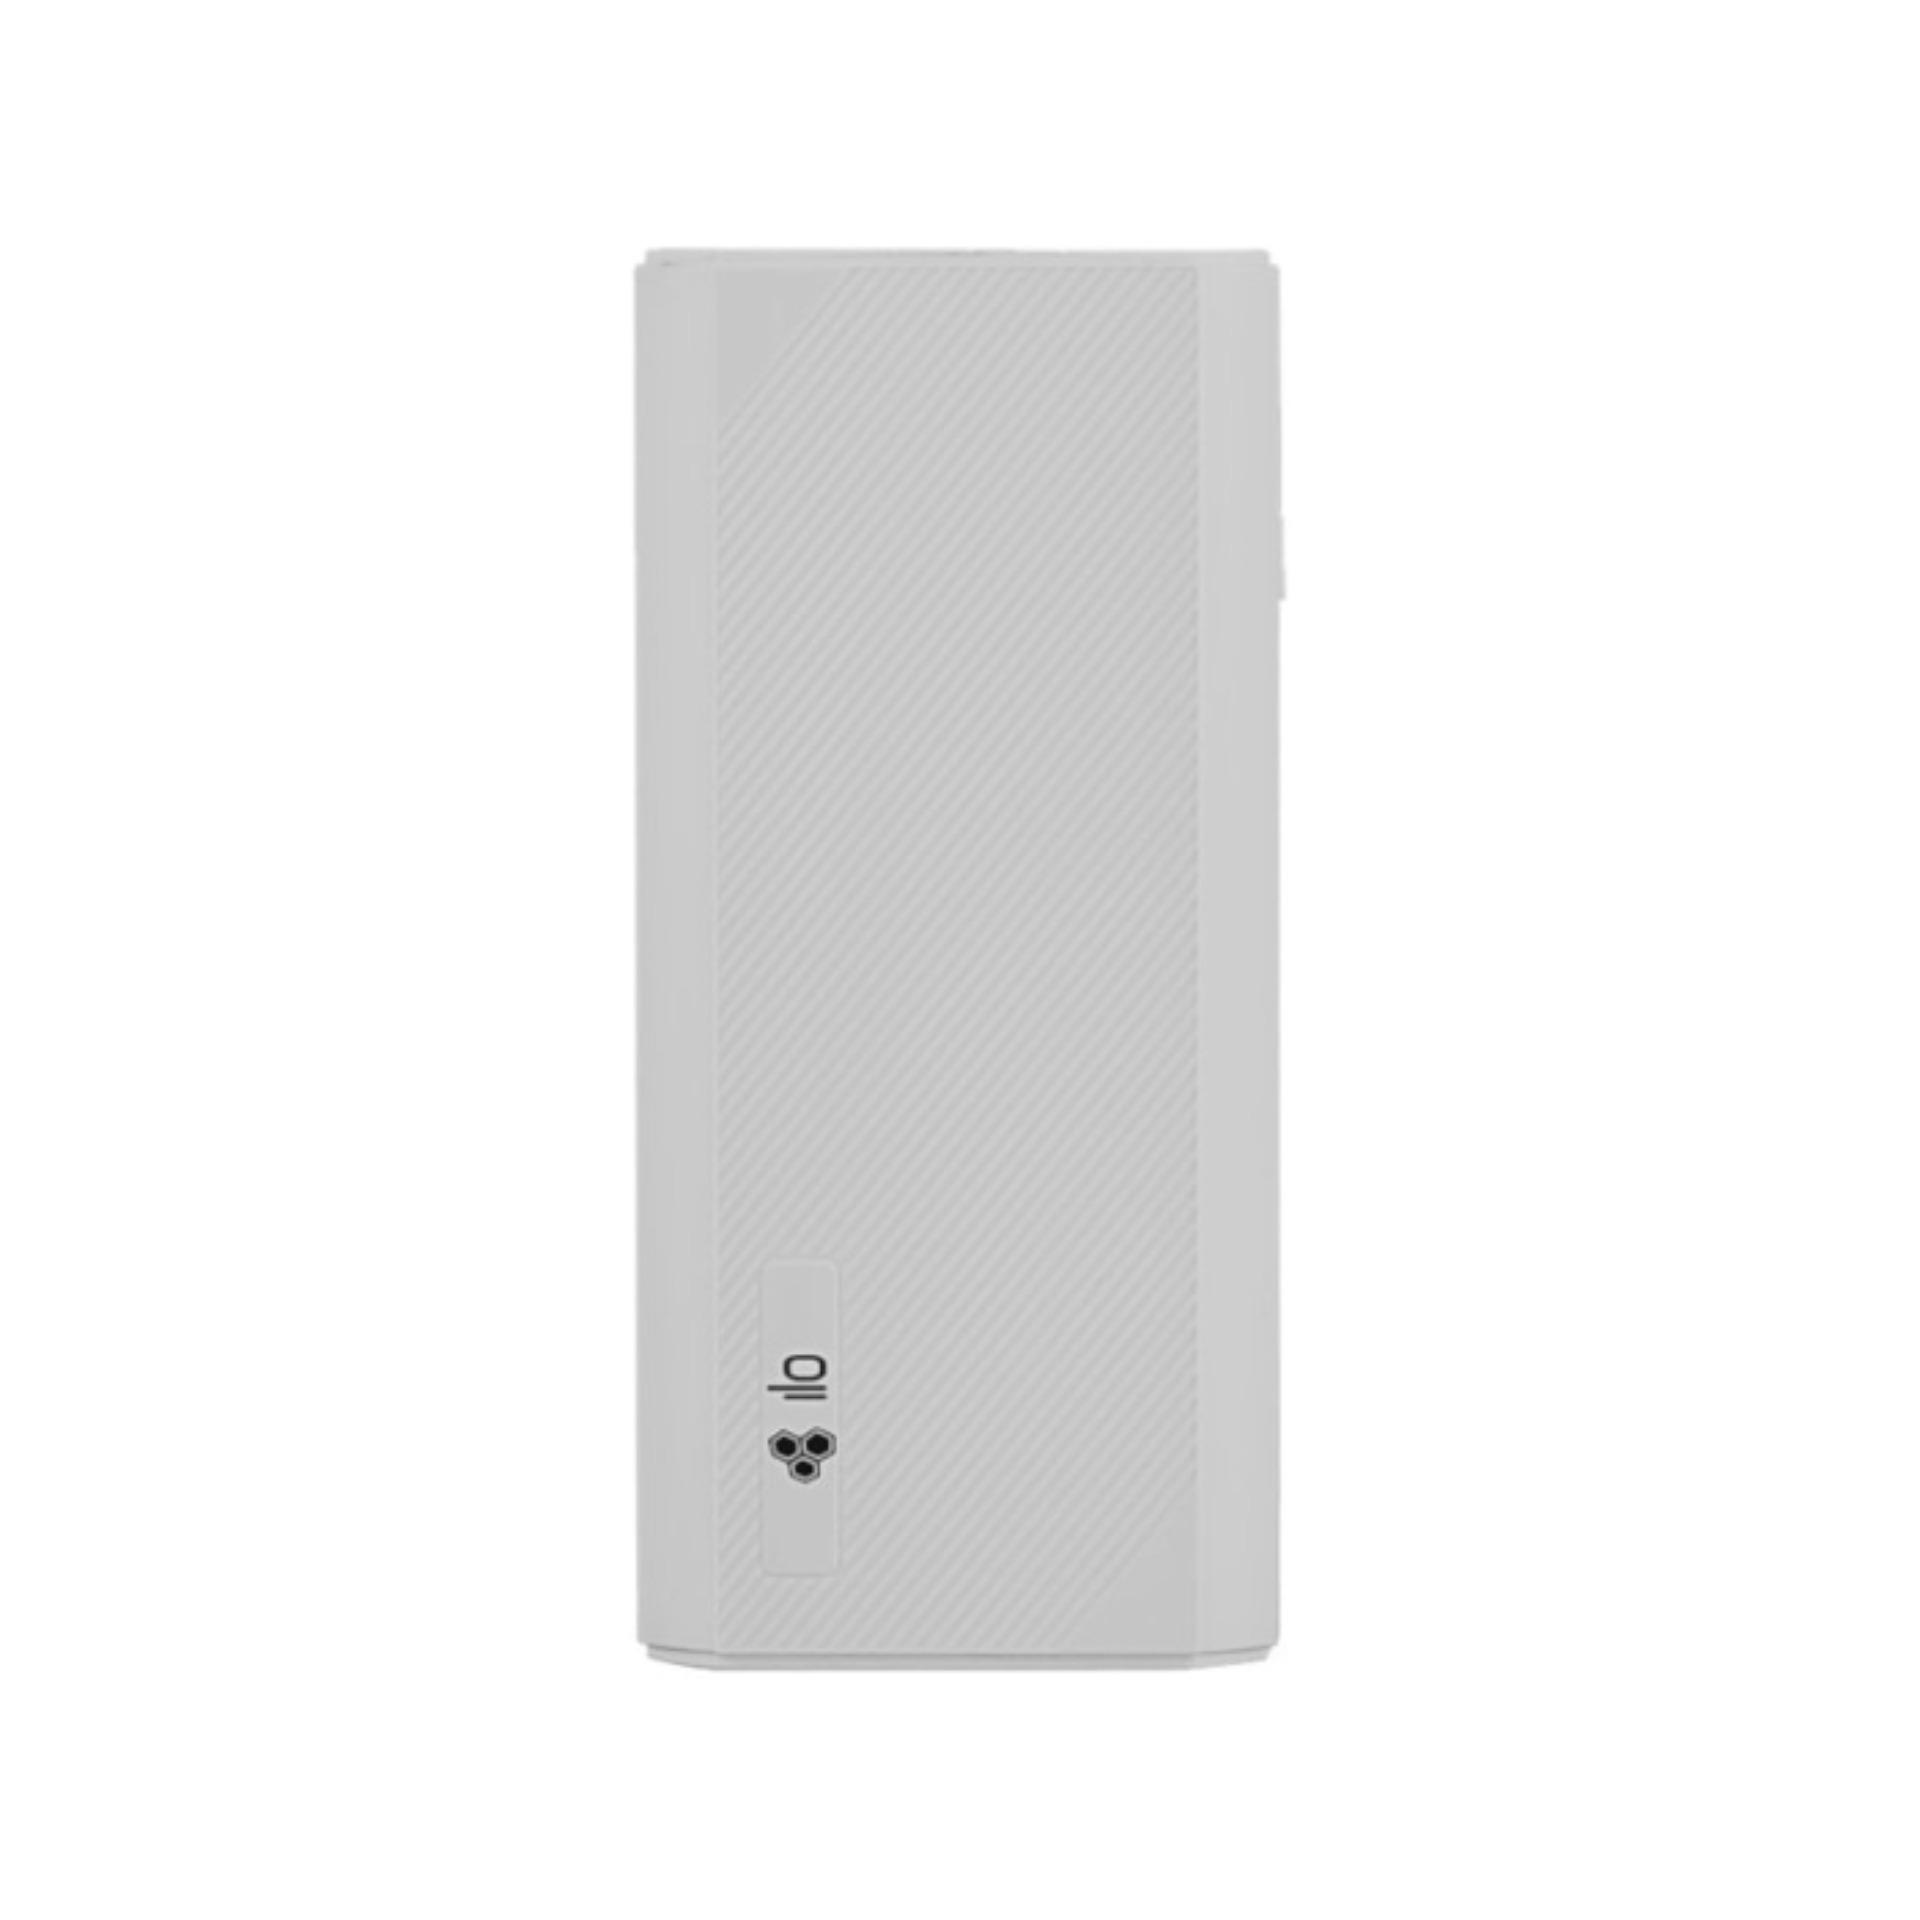 Harga Hippo Power Bank Ilo F1 12500 Mah New